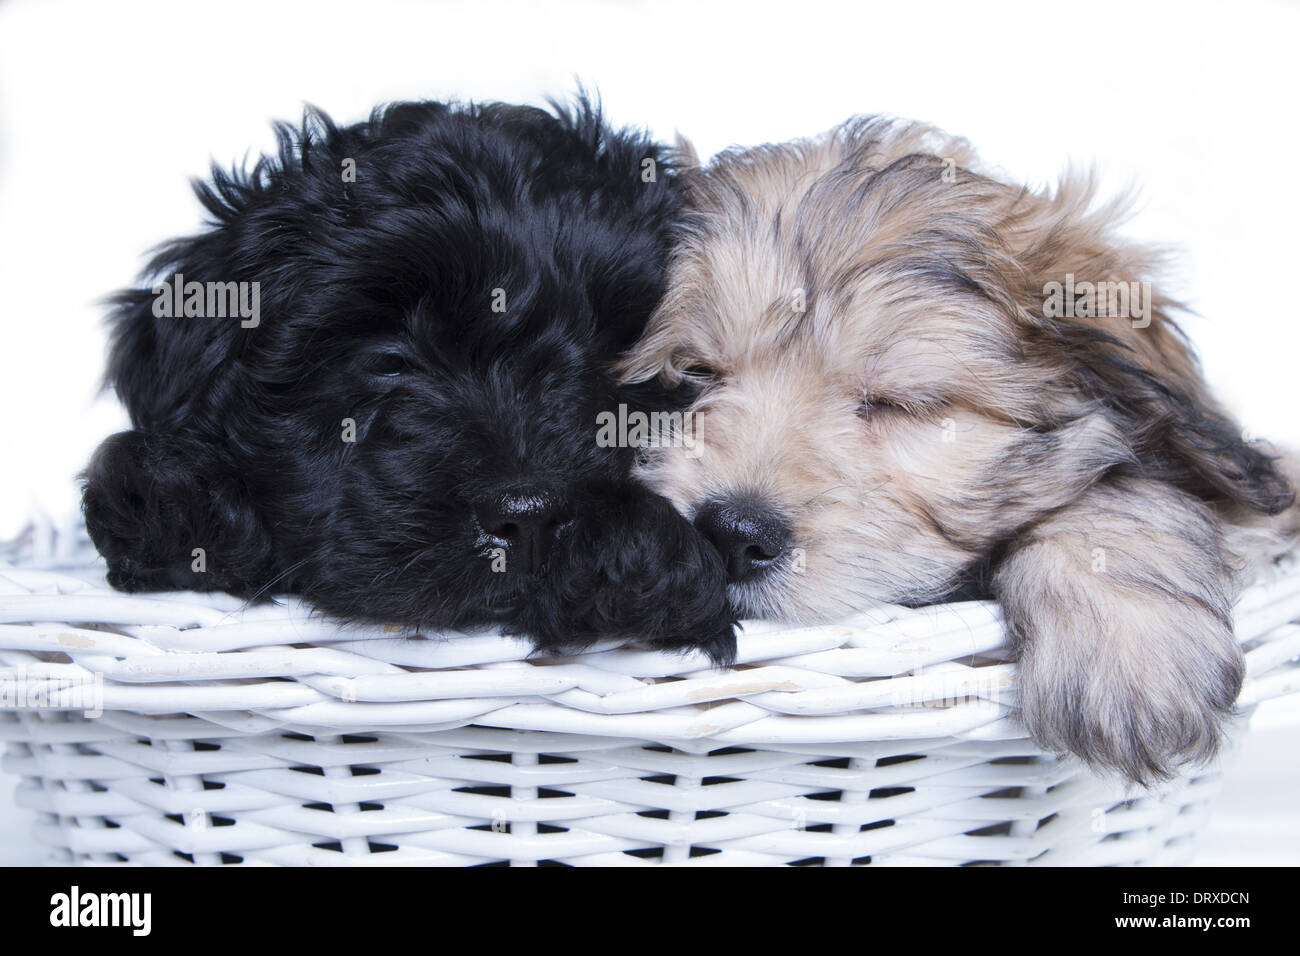 Two aussie doodle puppies sleeping in white basket on white background - Stock Image